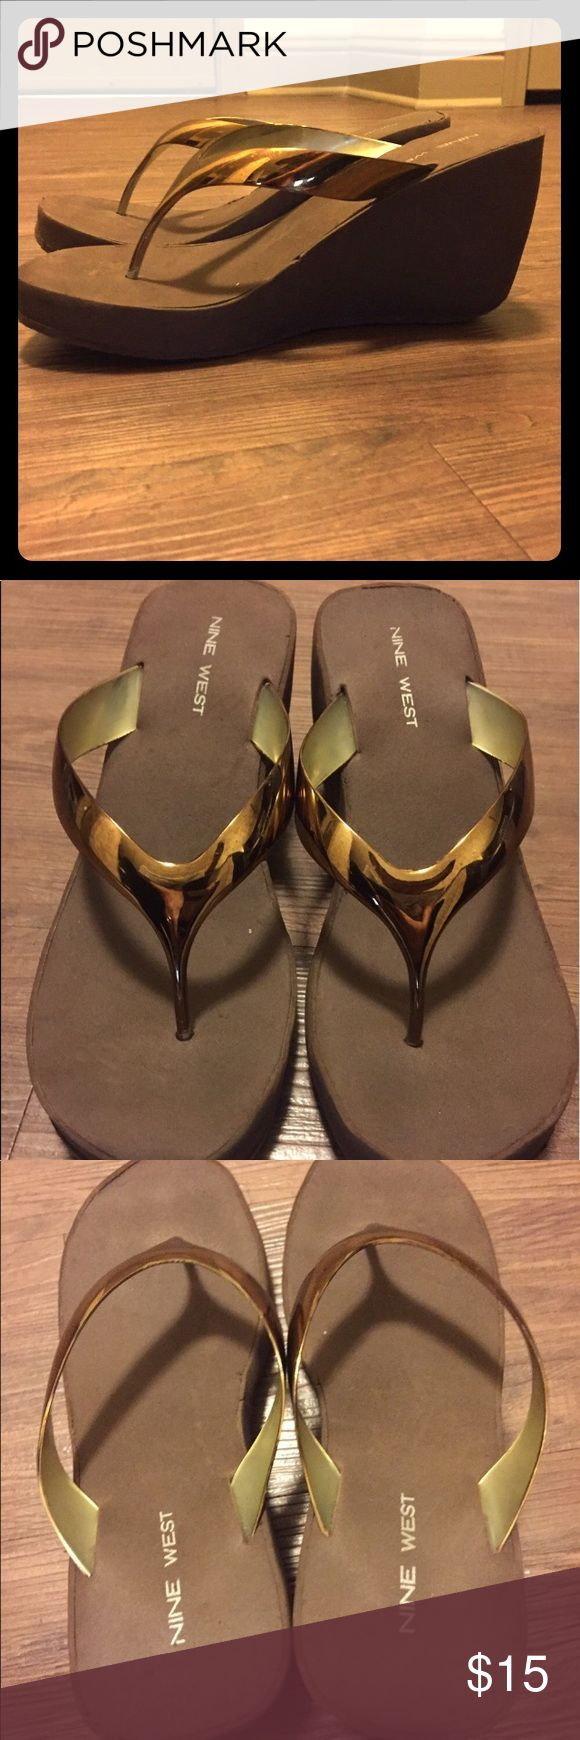 """NWOT Brown flip flops 3"""" heel New never worn by me. Brown flip flops 3"""" heel size 9. Great fit true to size. I'm 8.5 so a lil loose for me. Bought from a great Posher that said the were New. 🌟❤️ Nine West Shoes Sandals"""